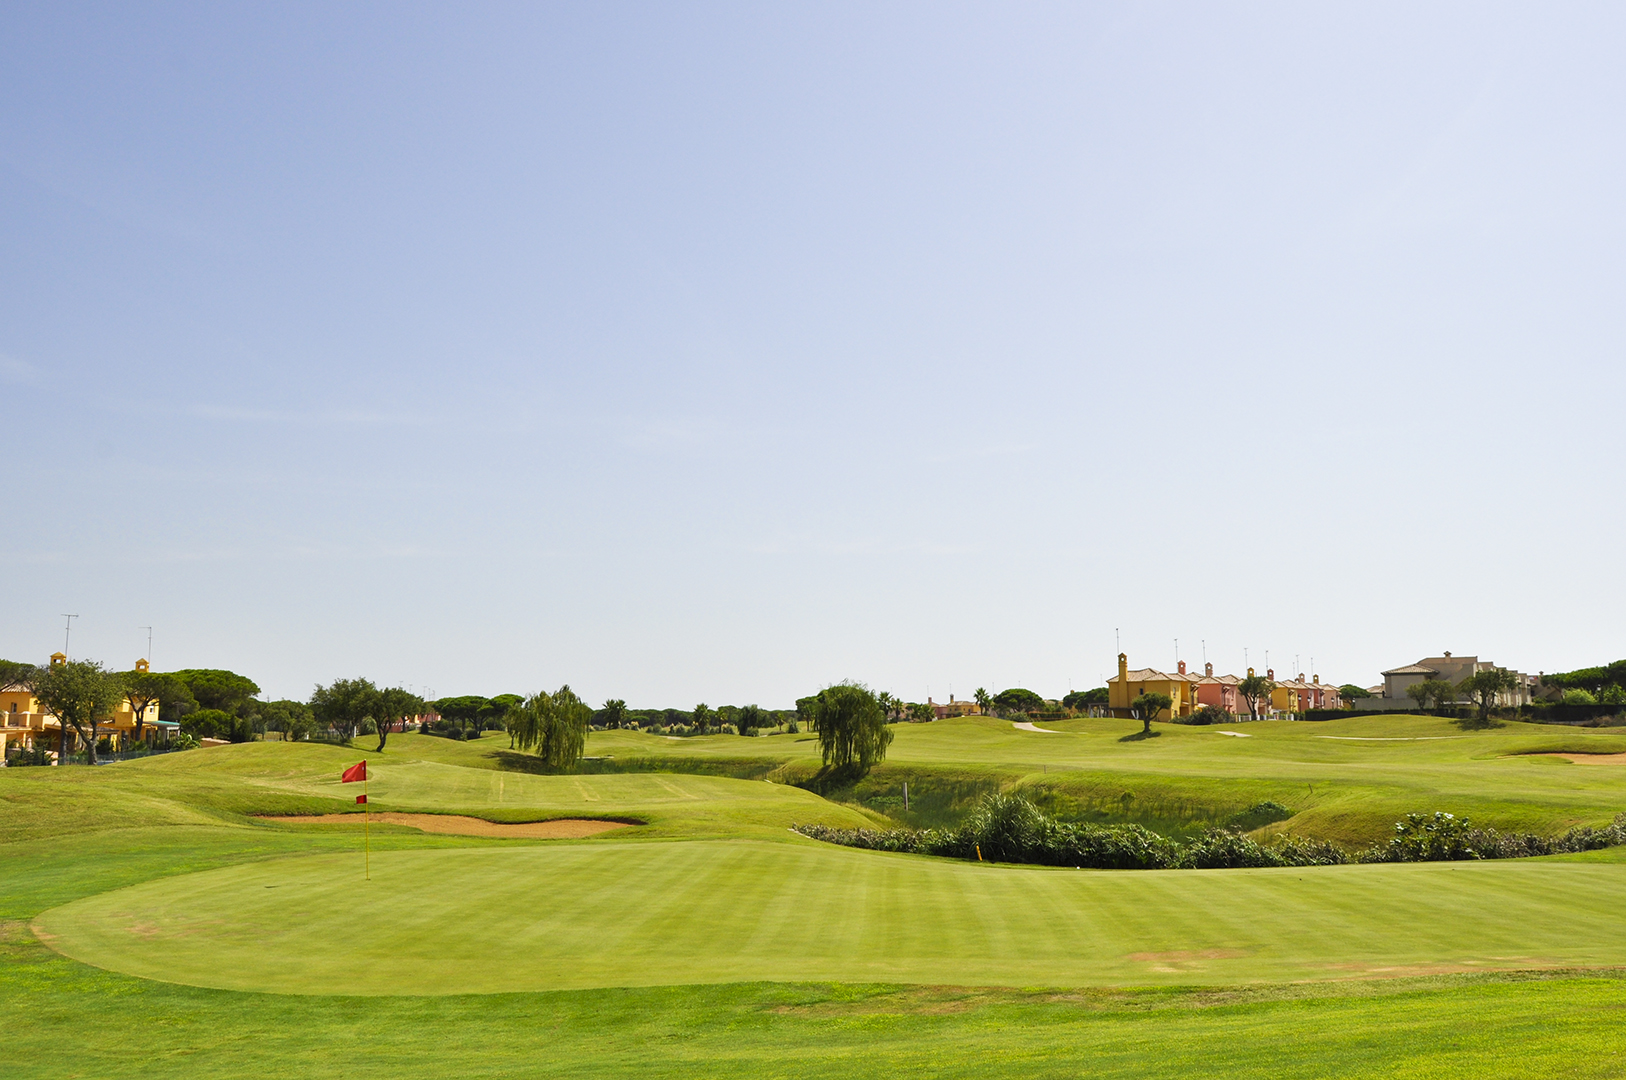 MANUEL PIÑERO - Sancti Petri Hills Golf is designed by the Spanish Professional Golfer Manuel Piñero, who has achieved many International and National victories such as the Professional Spanish Open, Individual World Cup, European Open Championship, the European Ryder Cup, and was also the European Ryder Cup Vice-Captain). The golf course is owned and built by Target Ingenieros.